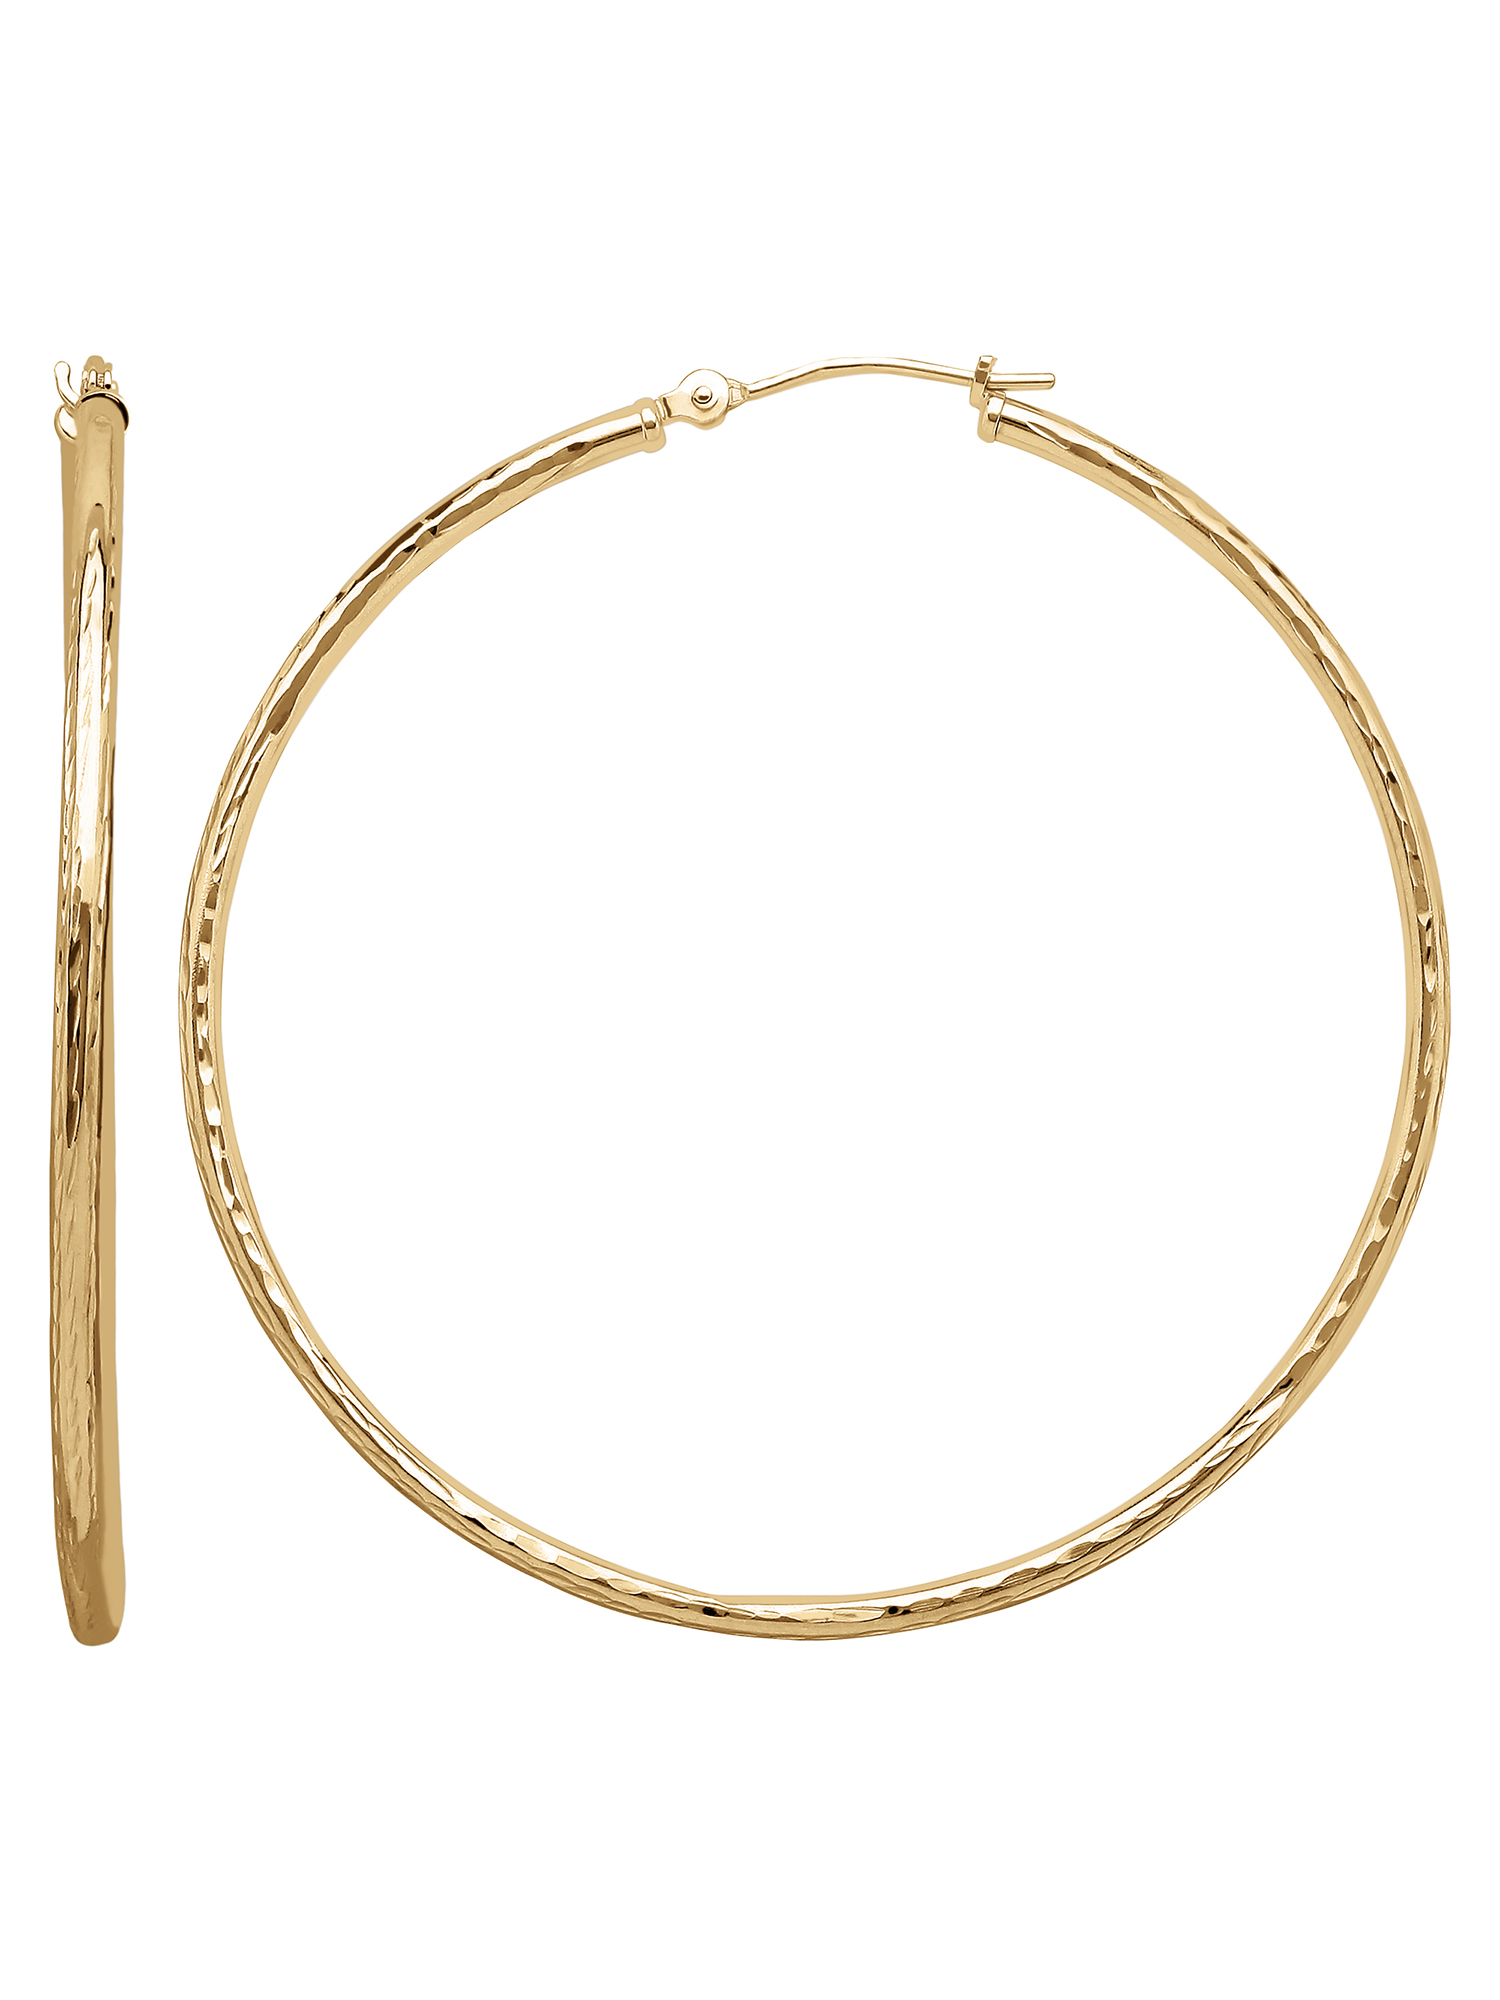 10K Yellow Gold 1.8x47mm Round Tube Hoop Earrings